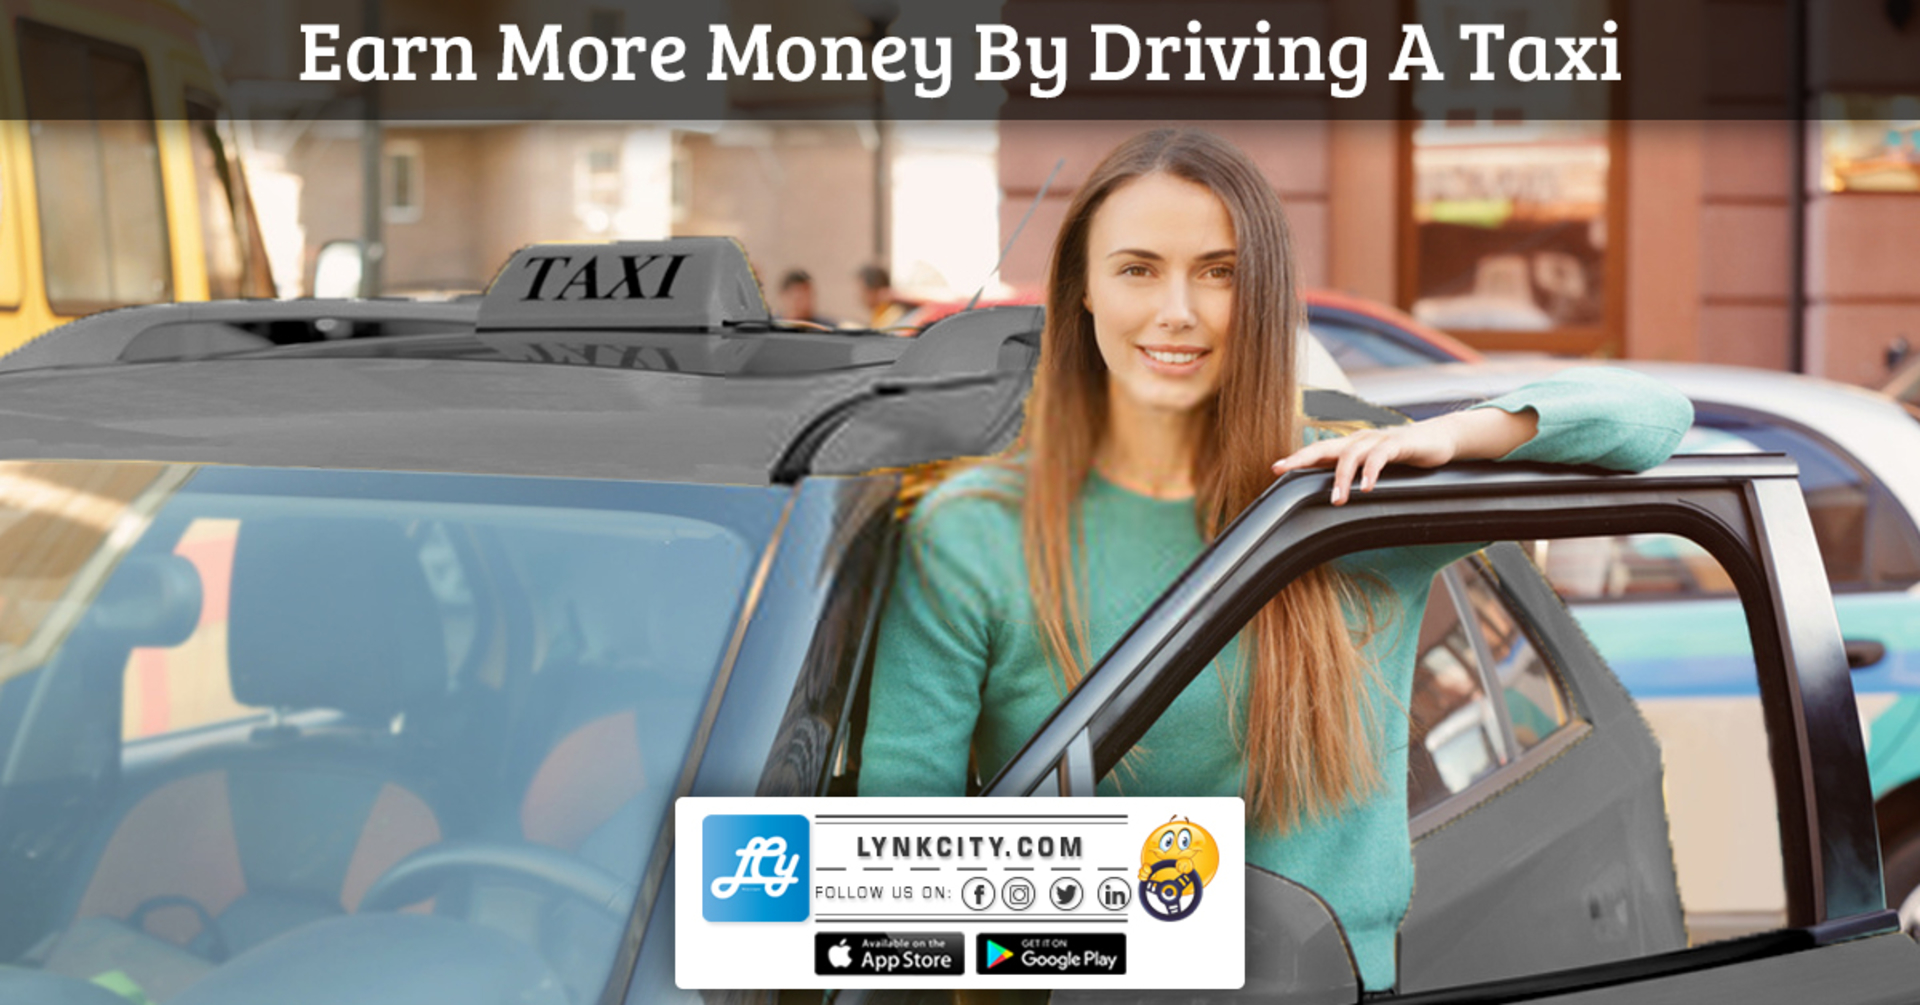 Earn More Money by Driving a Taxi image